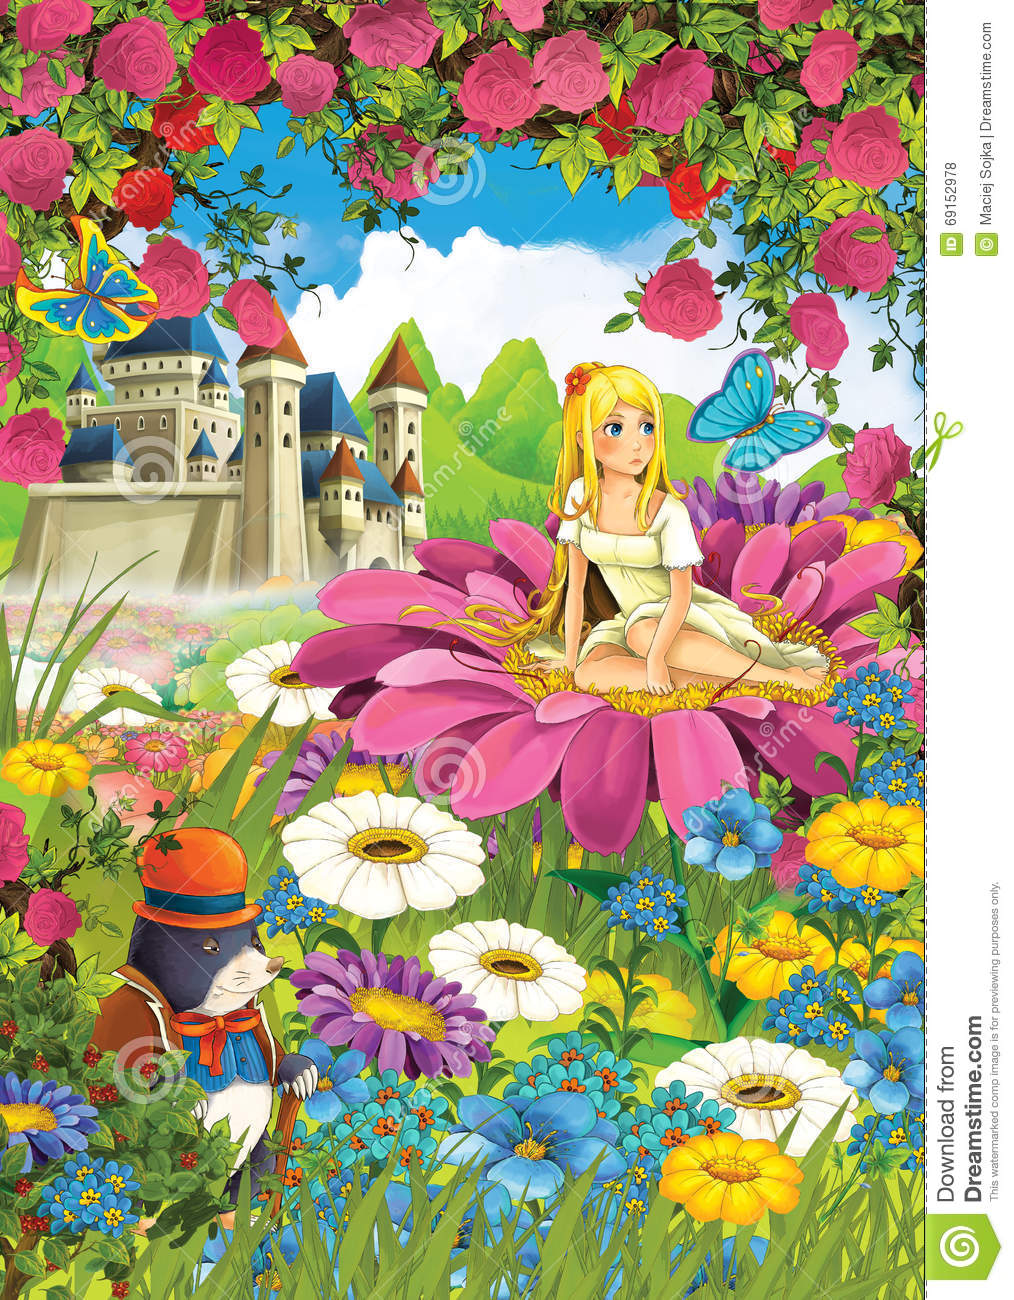 Cartoon scene of a girl on the flower with animal friends rodents cartoon scene of a girl on the flower with animal friends rodents izmirmasajfo Gallery